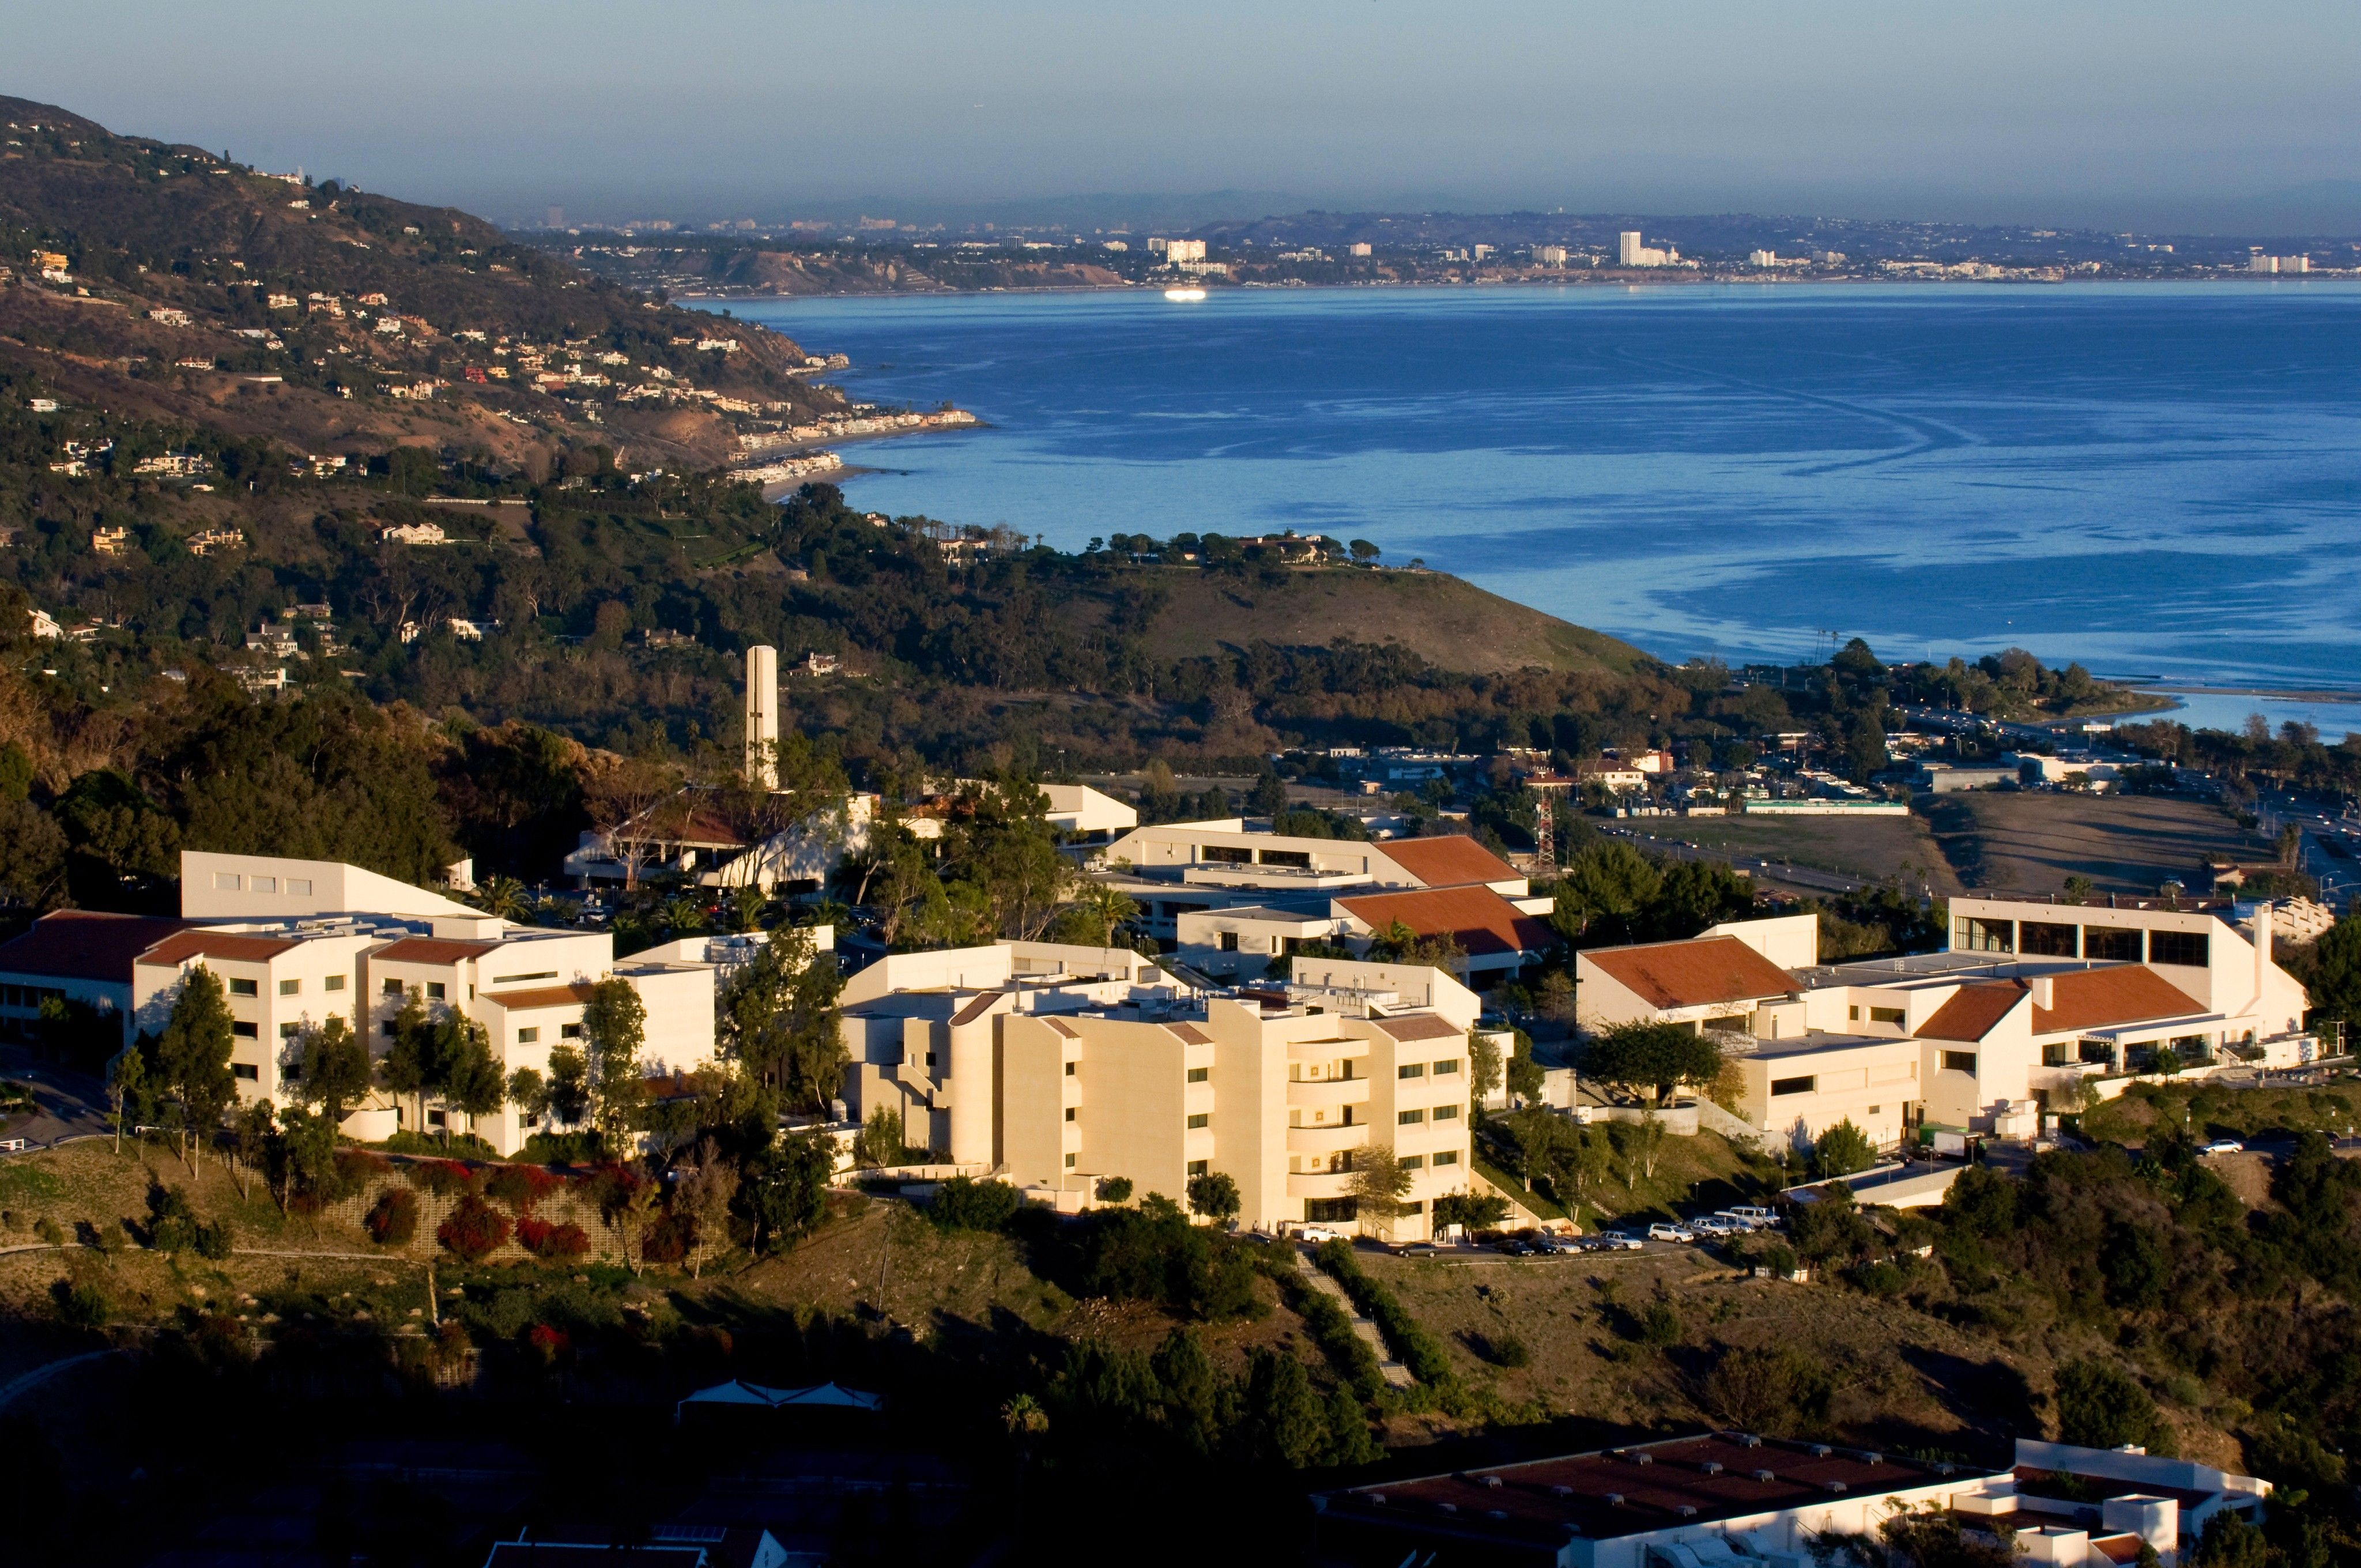 Pepperdine University - The Graziadio School of Business and Management